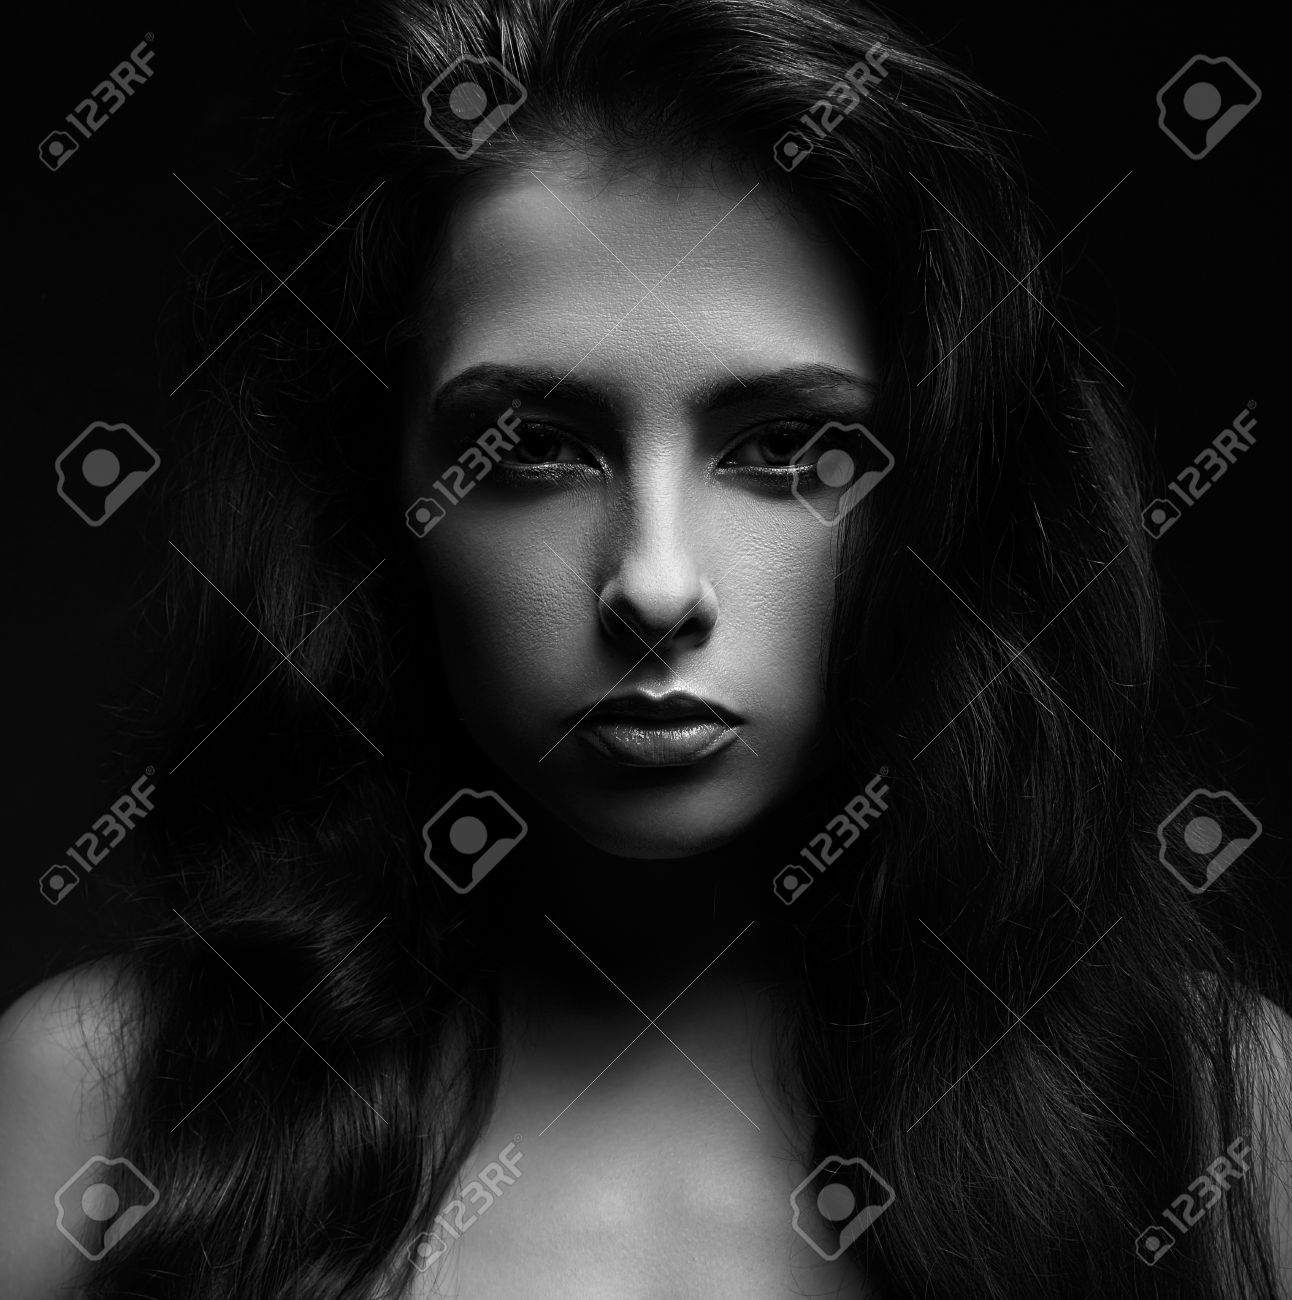 Beautiful woman face vogue portrait black and white stock photo 28649394